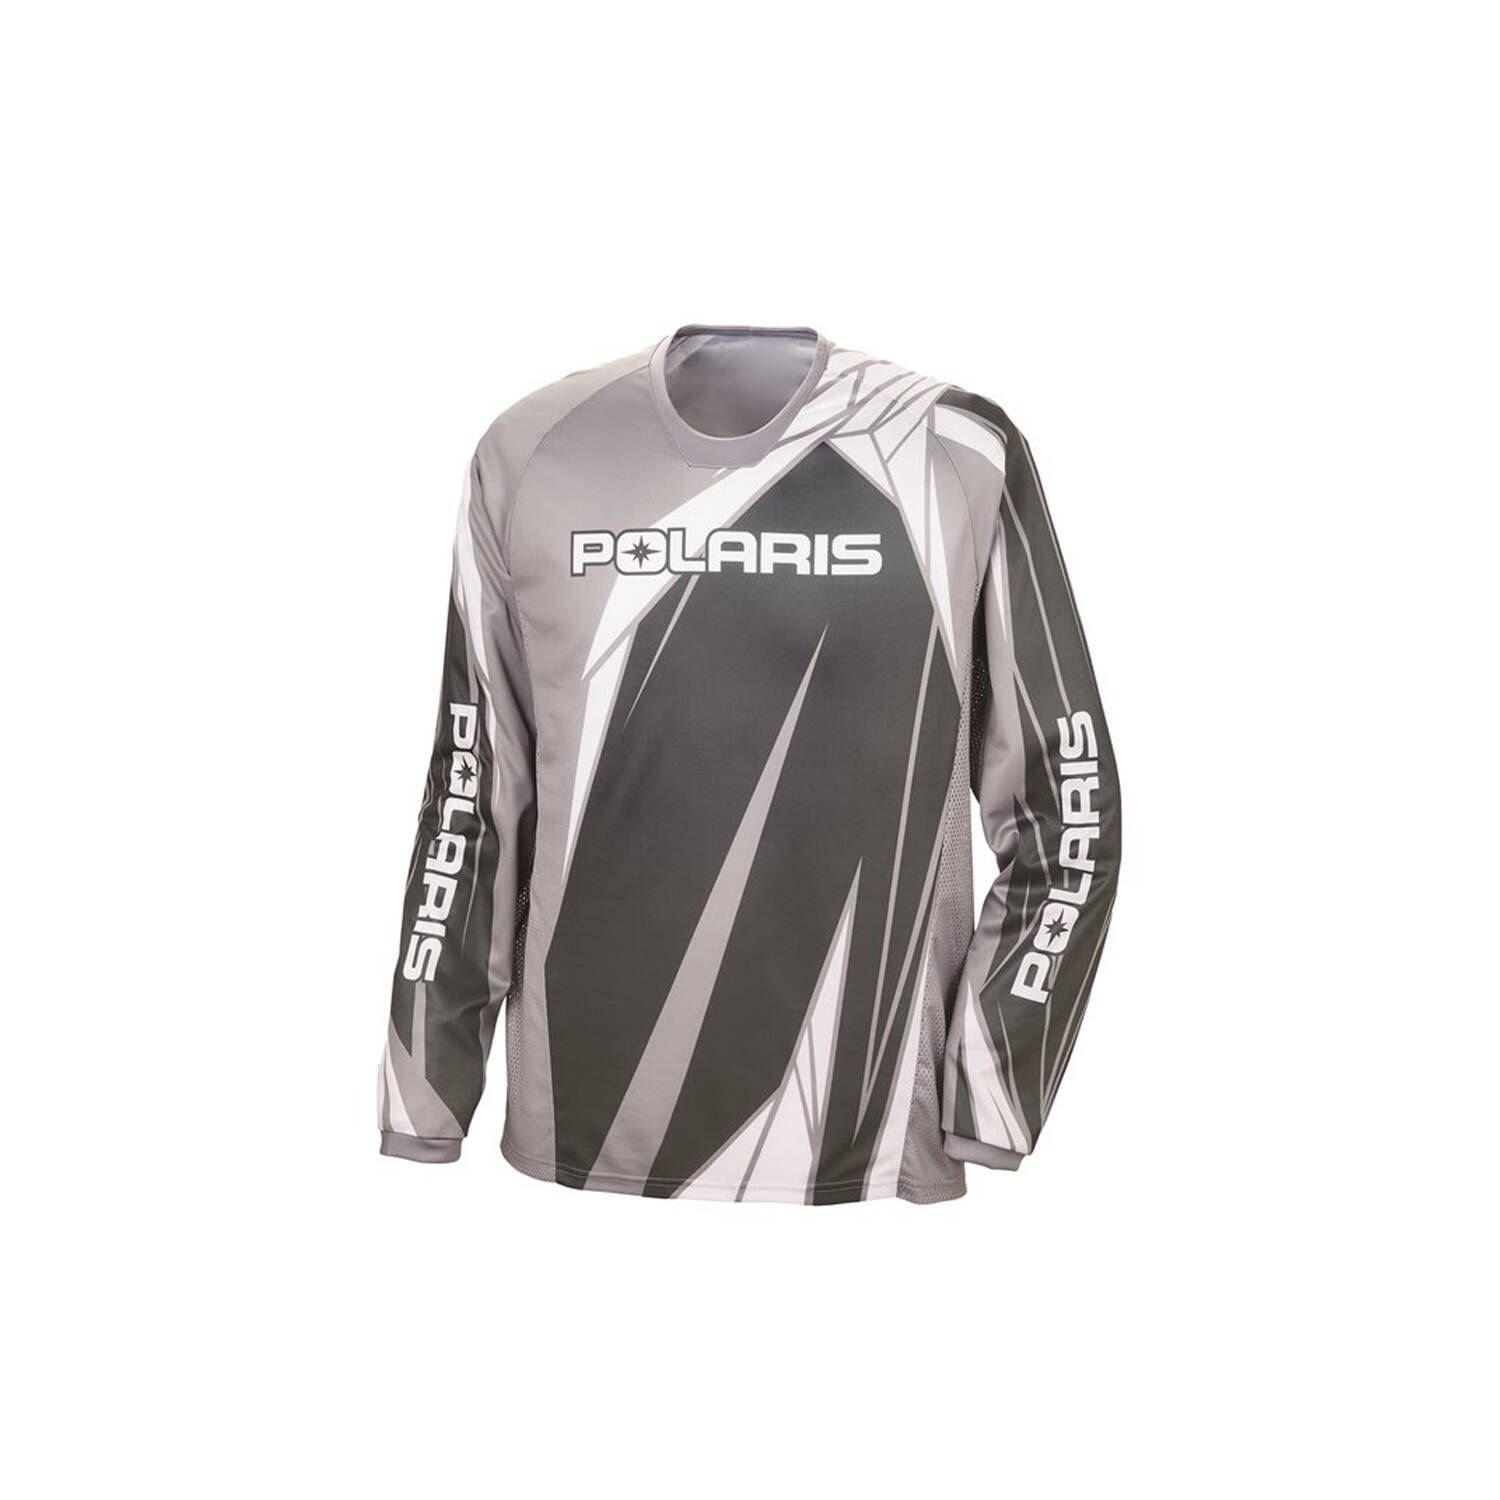 Unisex Long-Sleeve Off-Road Riding Jersey with Mesh Ventilated Panels, Gray